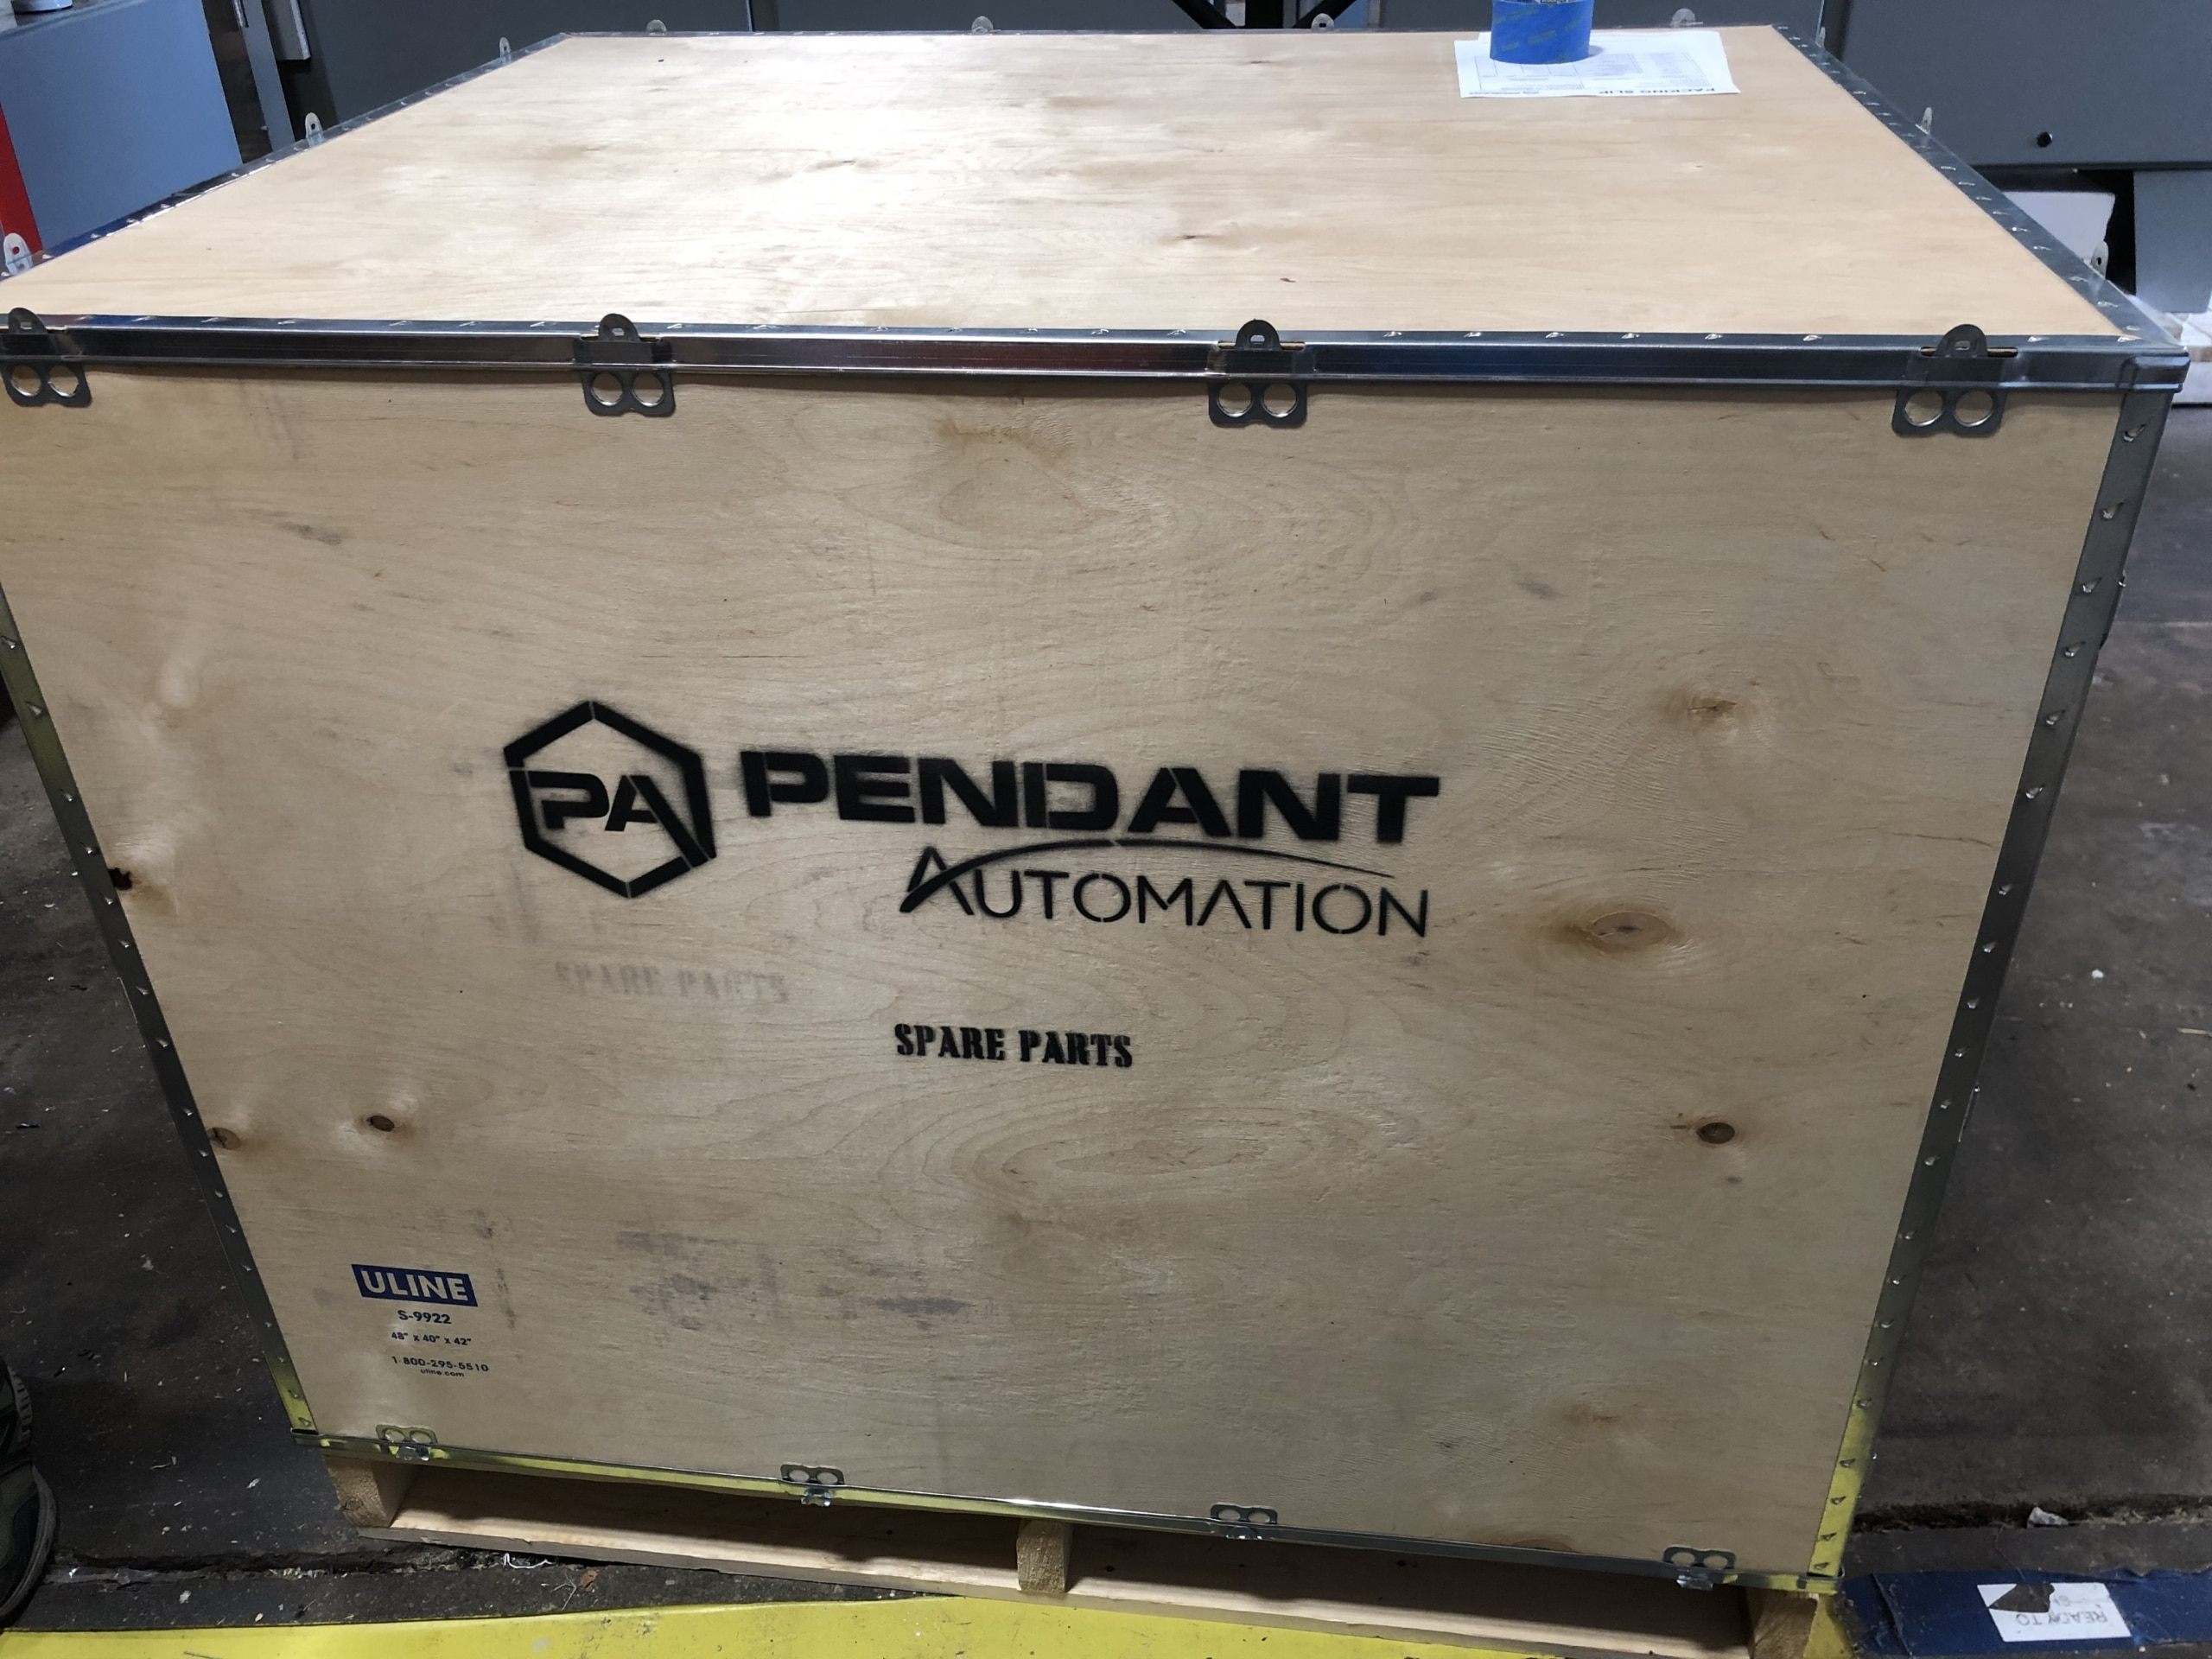 Automation parts shipping crate